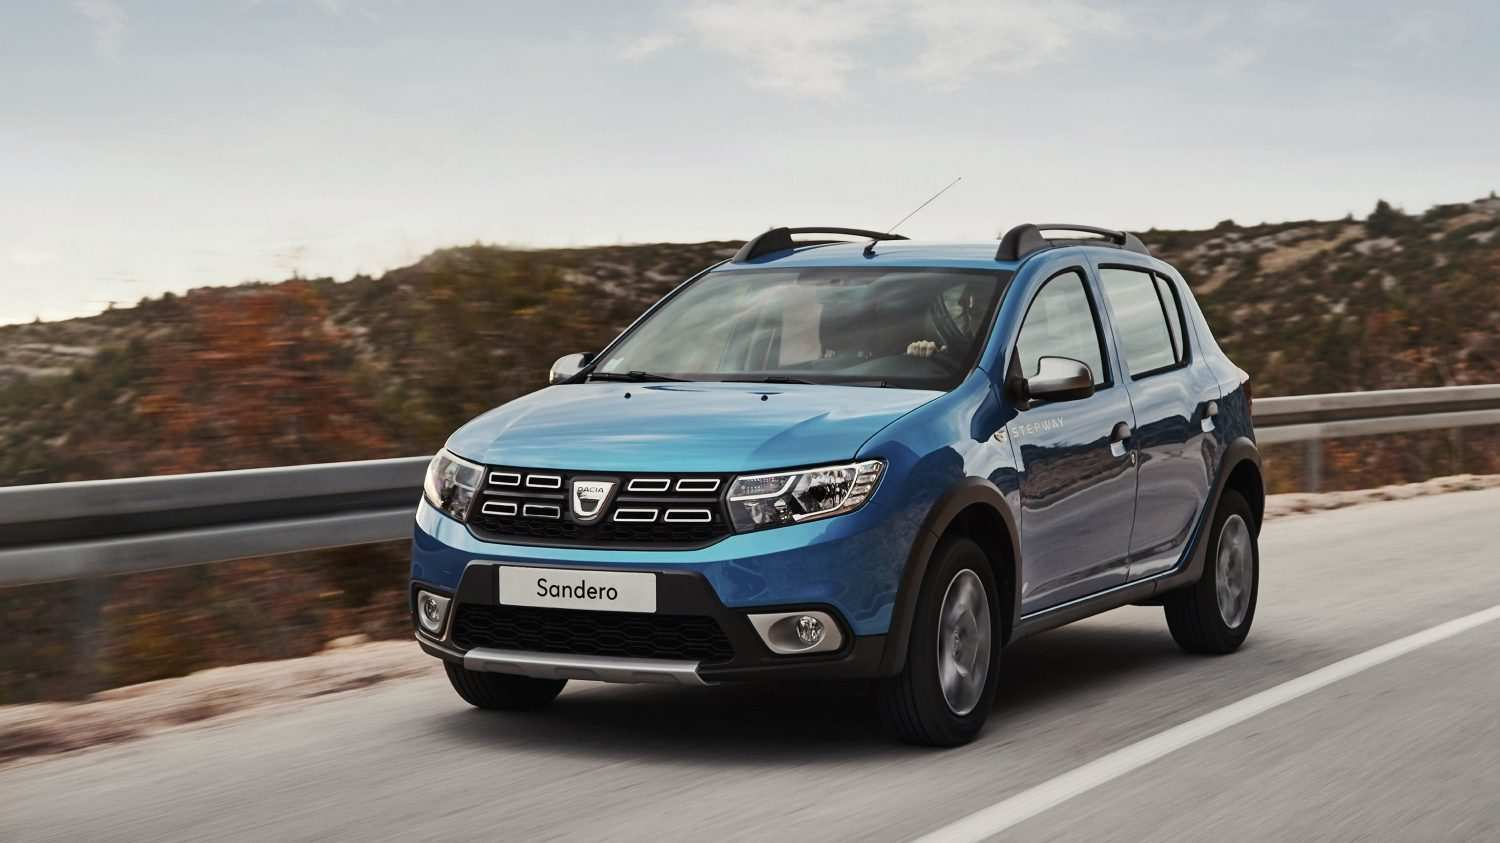 48 New Dacia Sandero 2019 Pictures